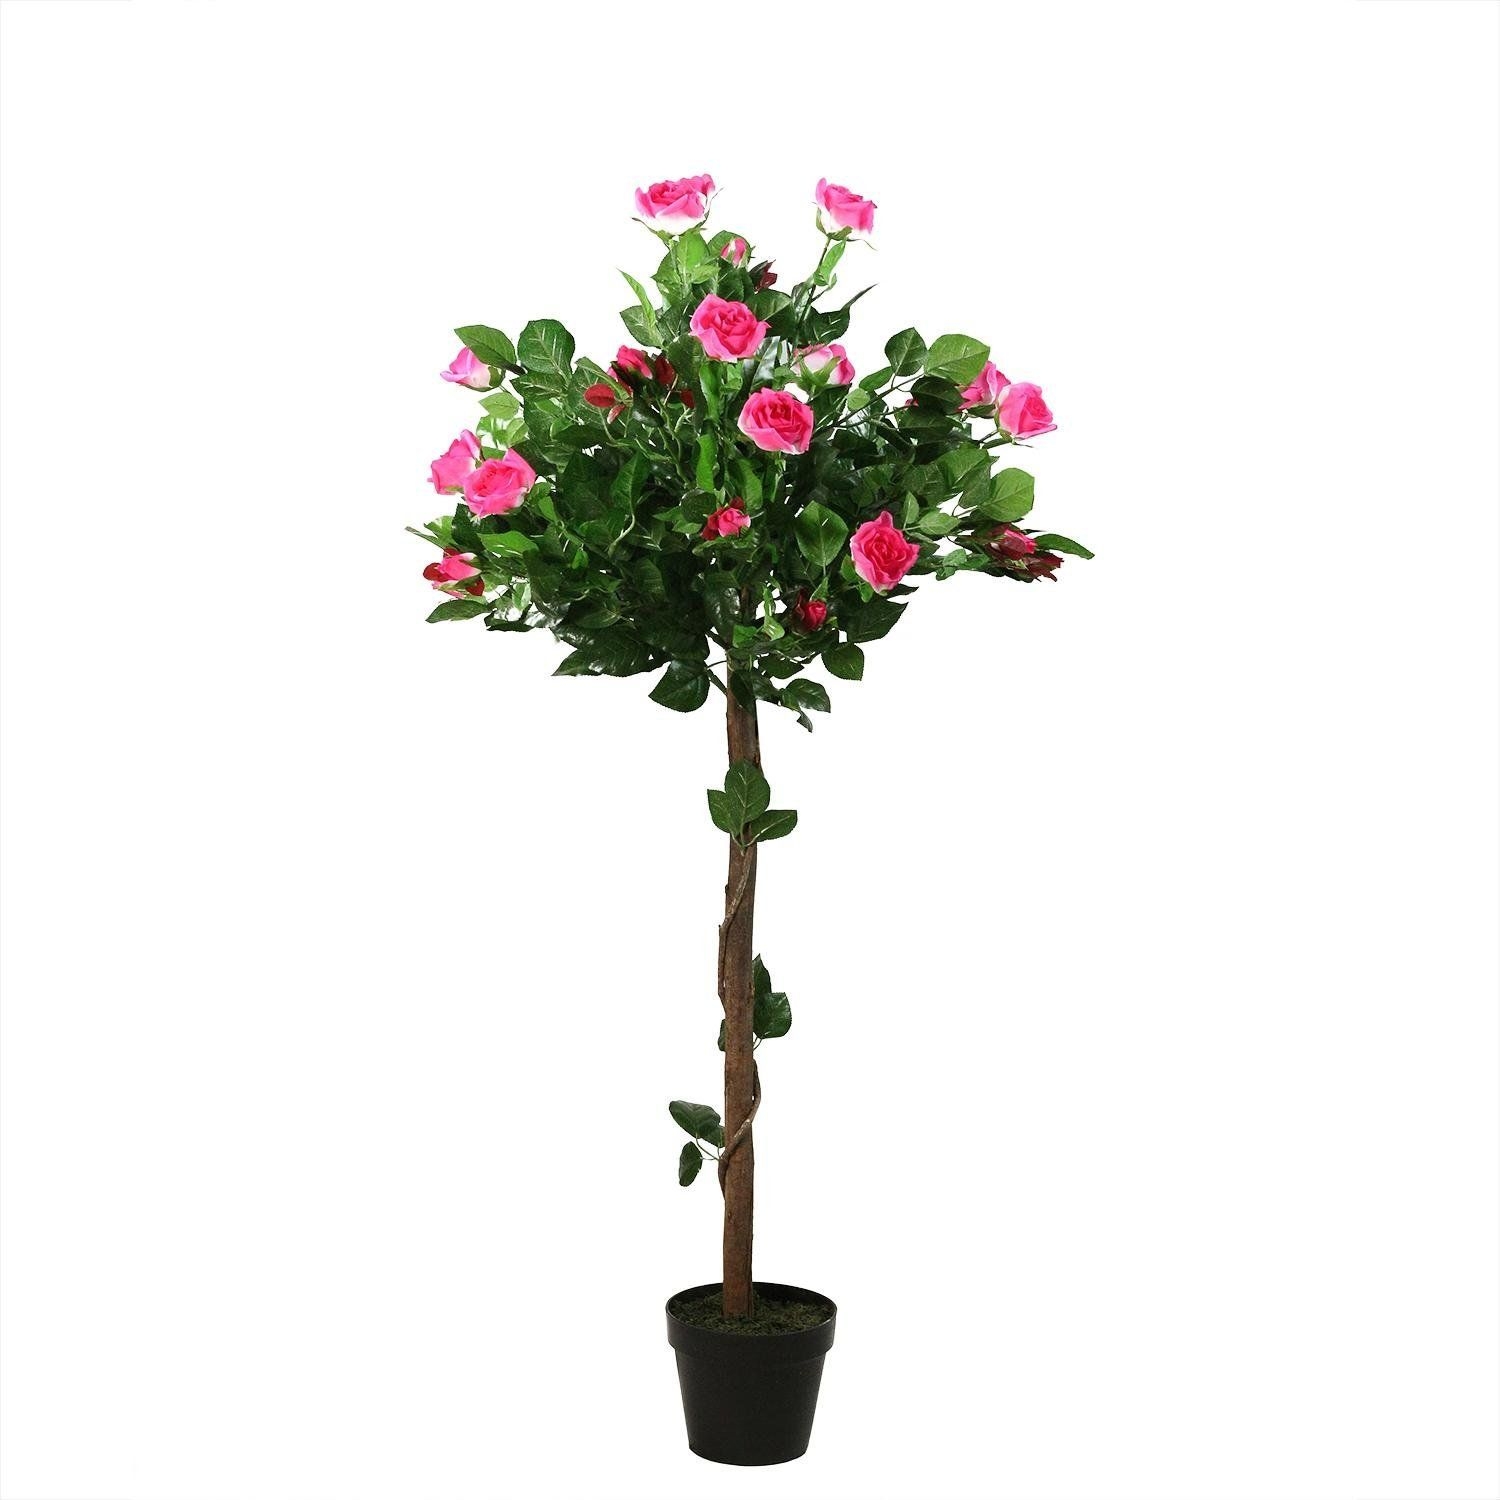 Decorative garden trees  u Decorative Potted Artificial White and Pink Floral Rose Garden